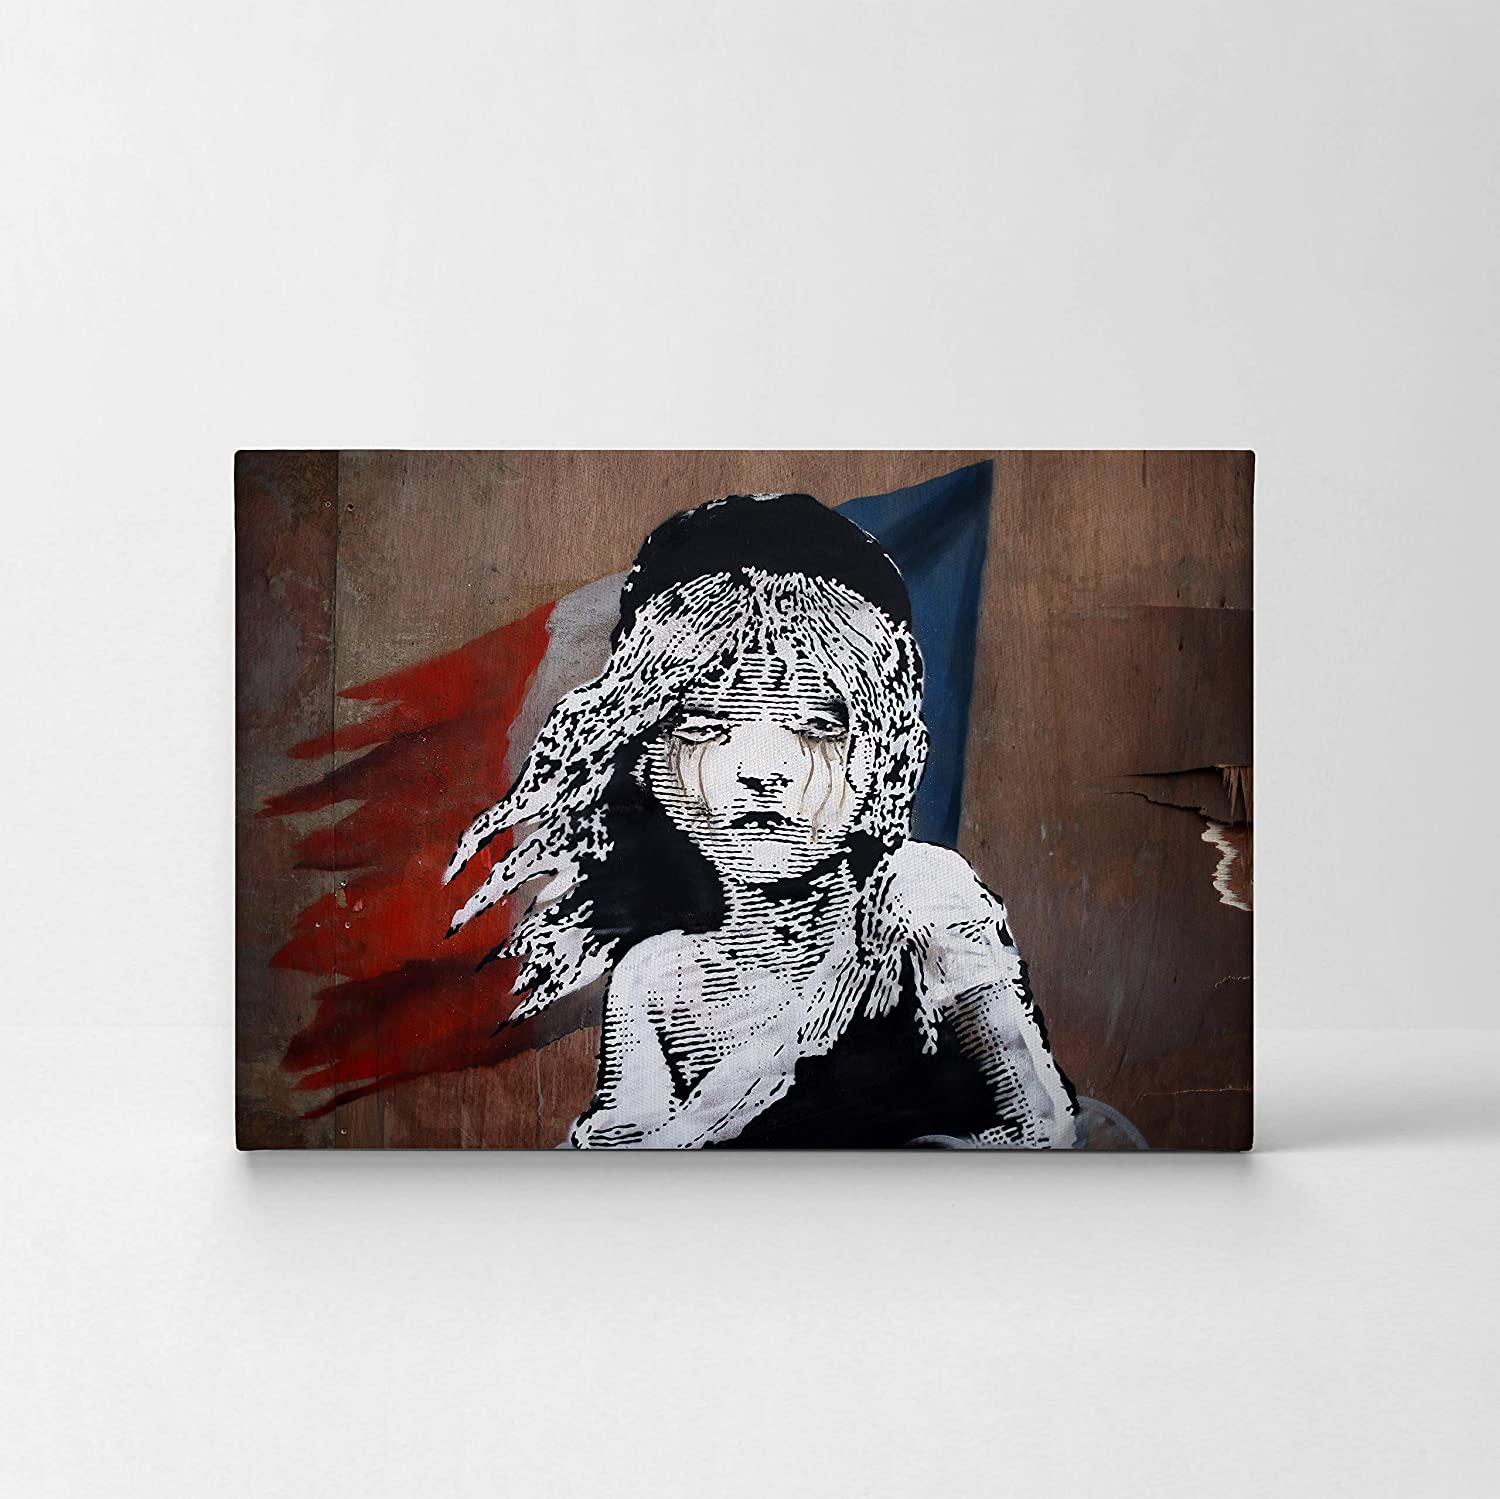 Banksy canvas print les miserable graffiti london uk street art banksy wall art modern art wall decor home decor stretched ready to hang 0 handmade in